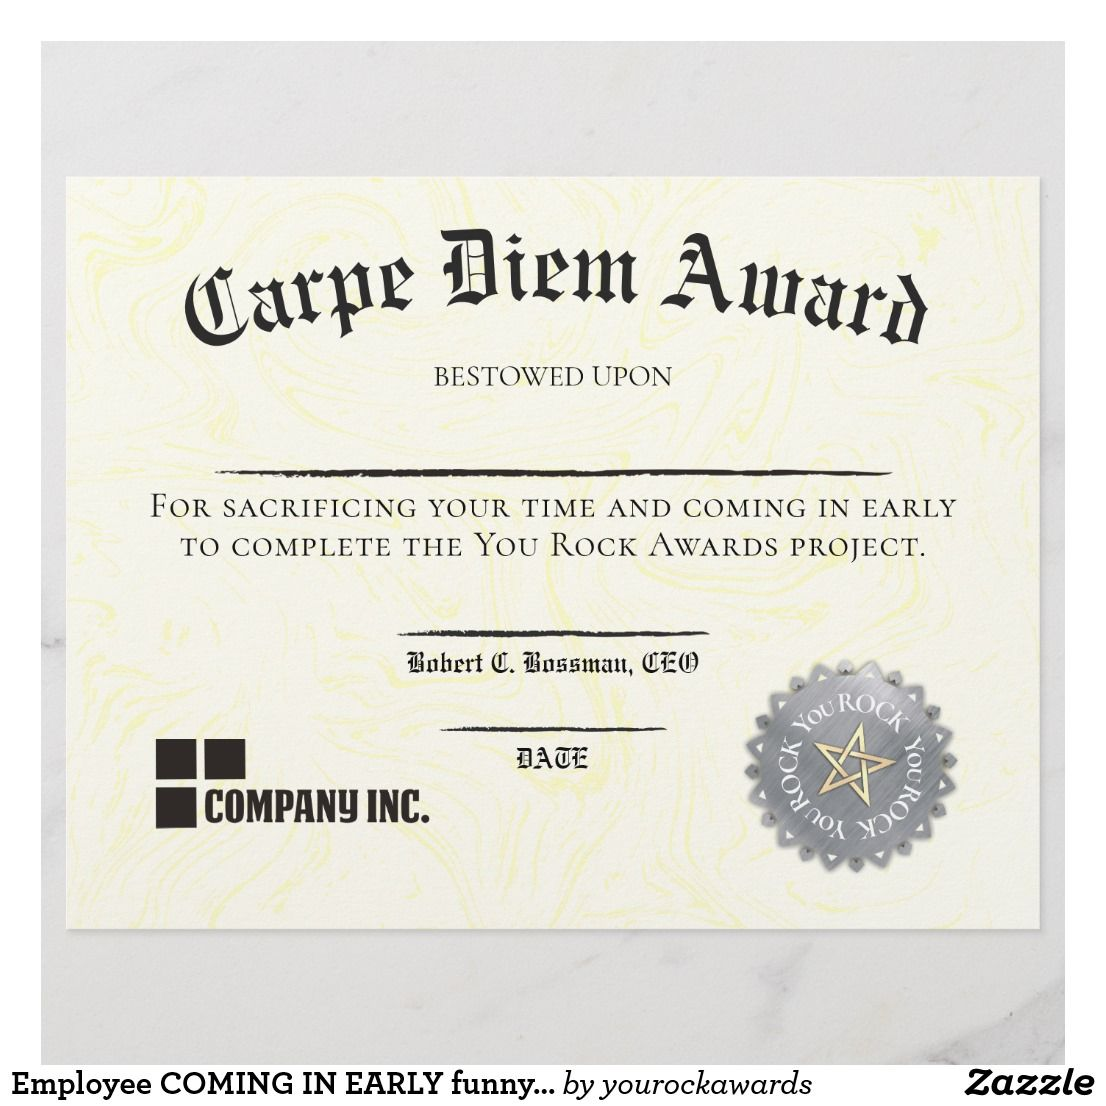 Employee COMING IN EARLY Funny Certificate Award